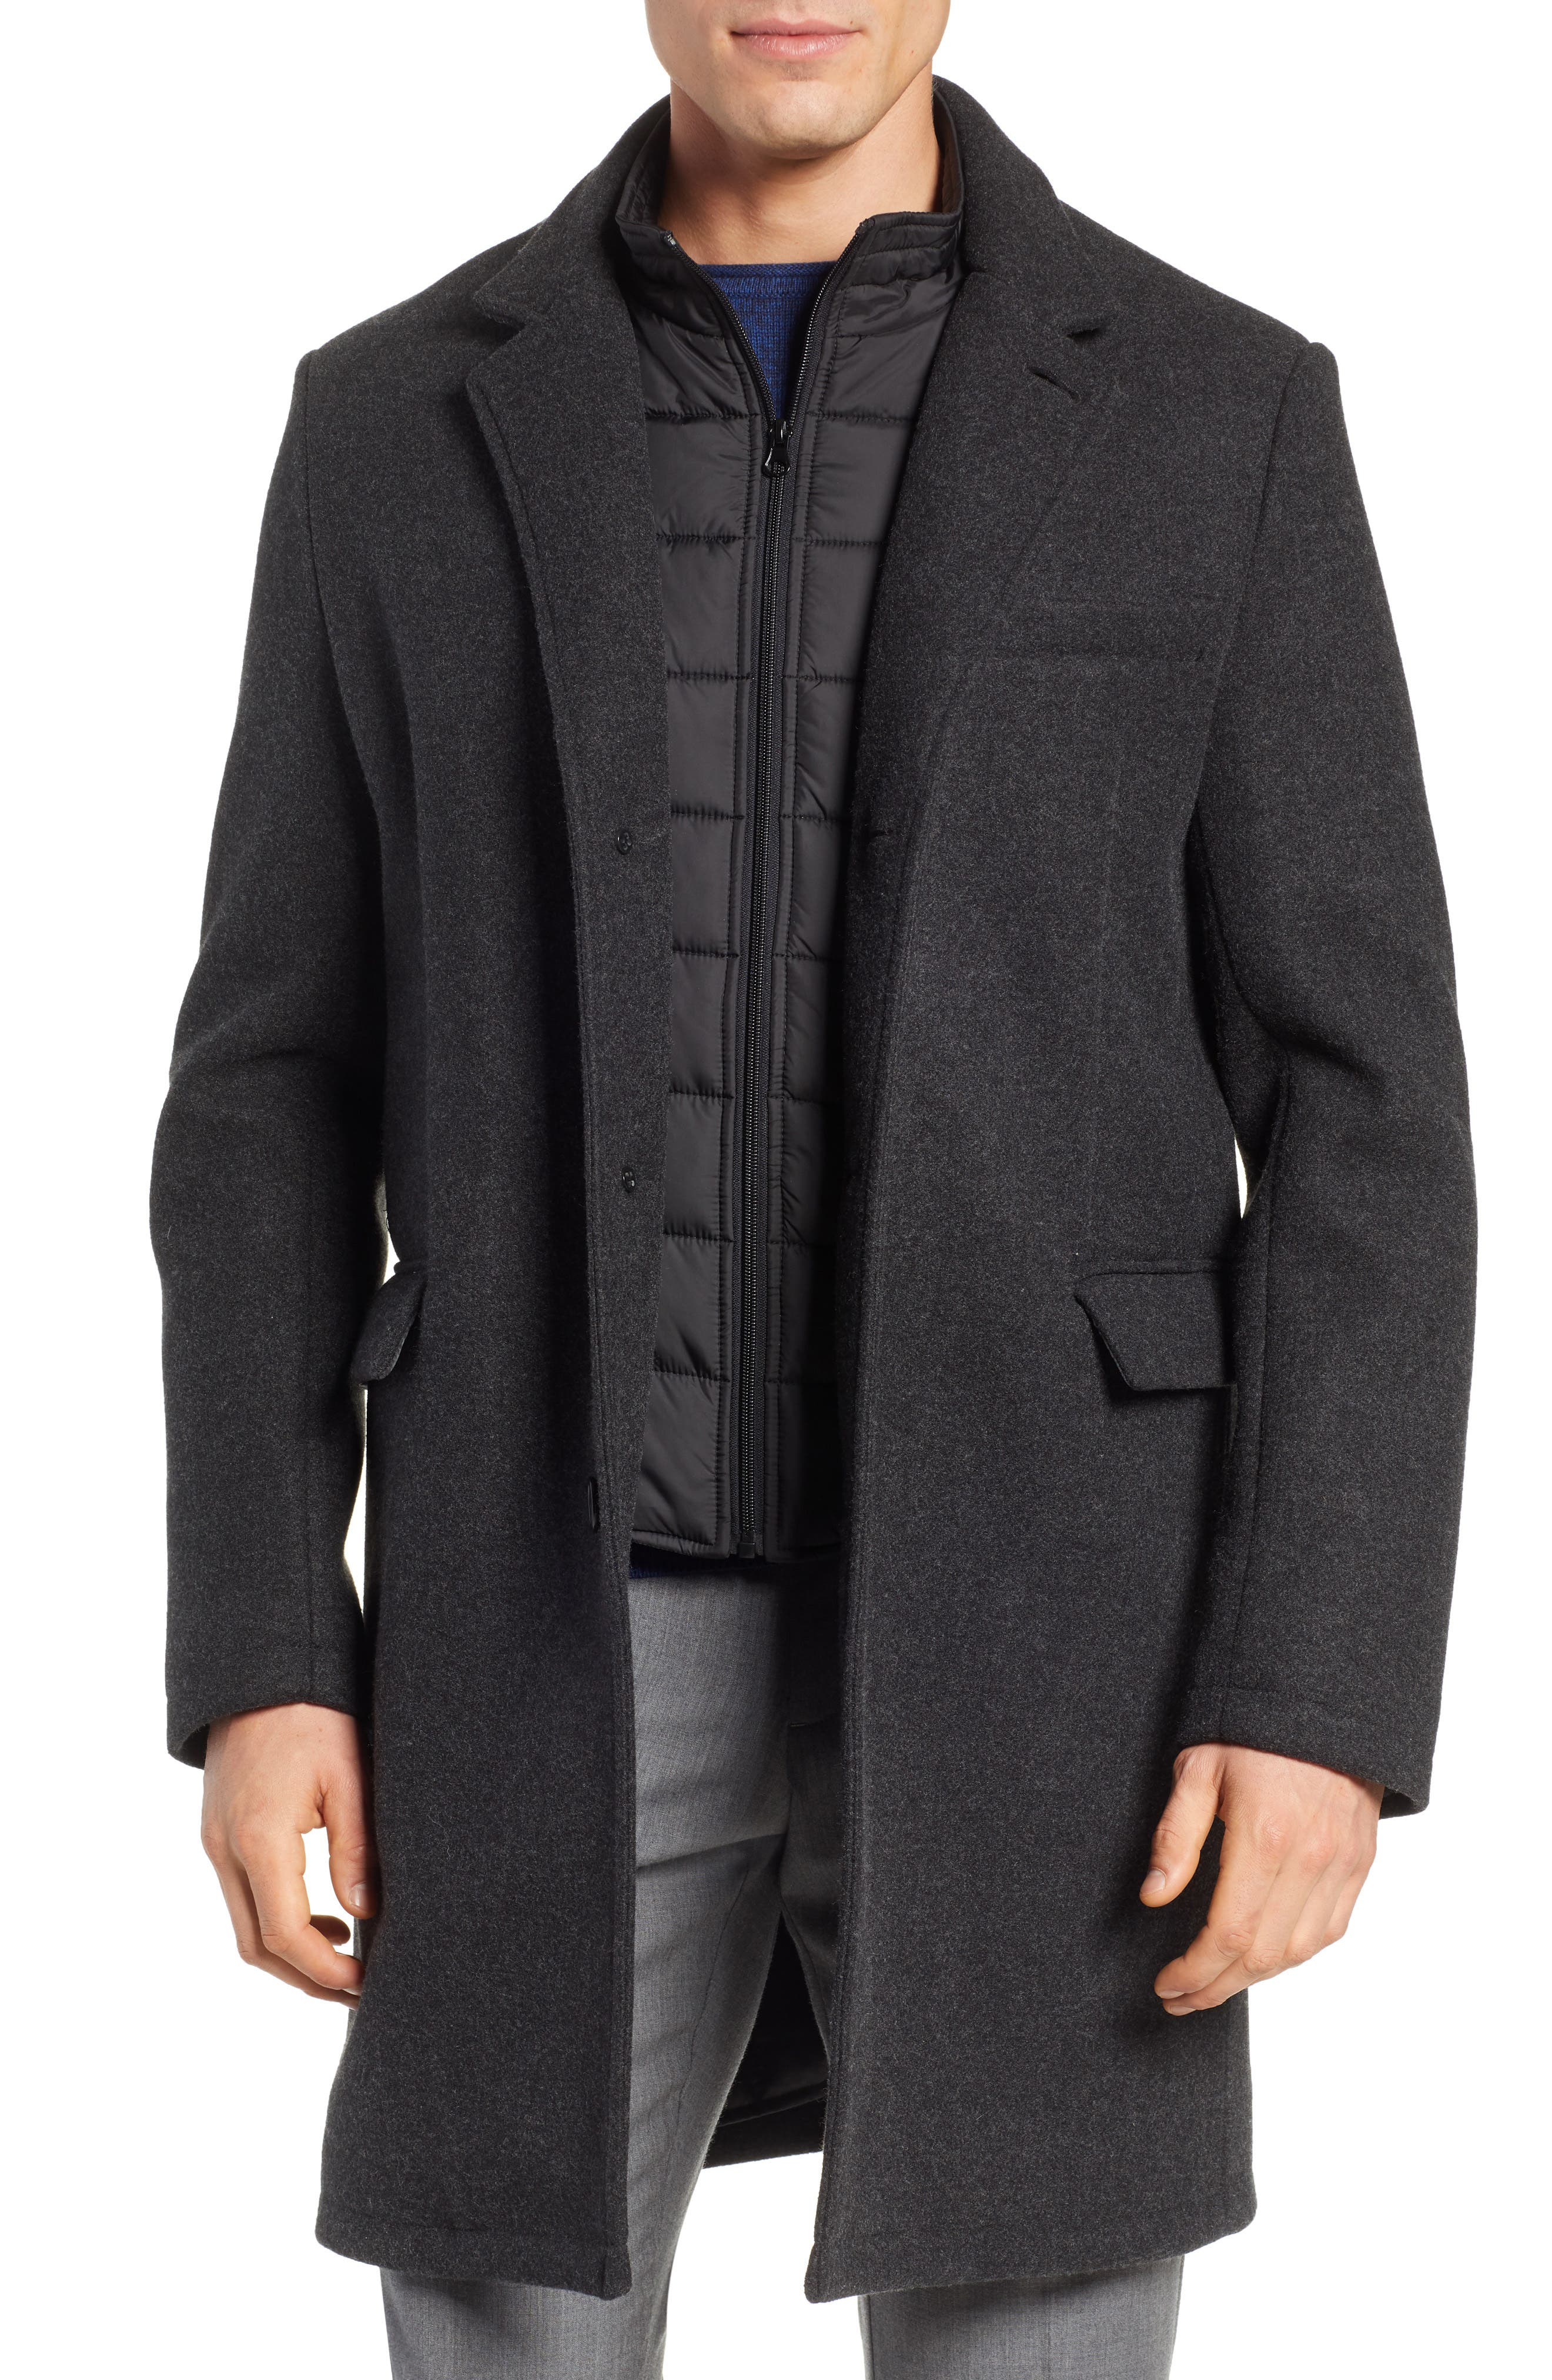 Westcott Wool Car Coat,                             Main thumbnail 1, color,                             001